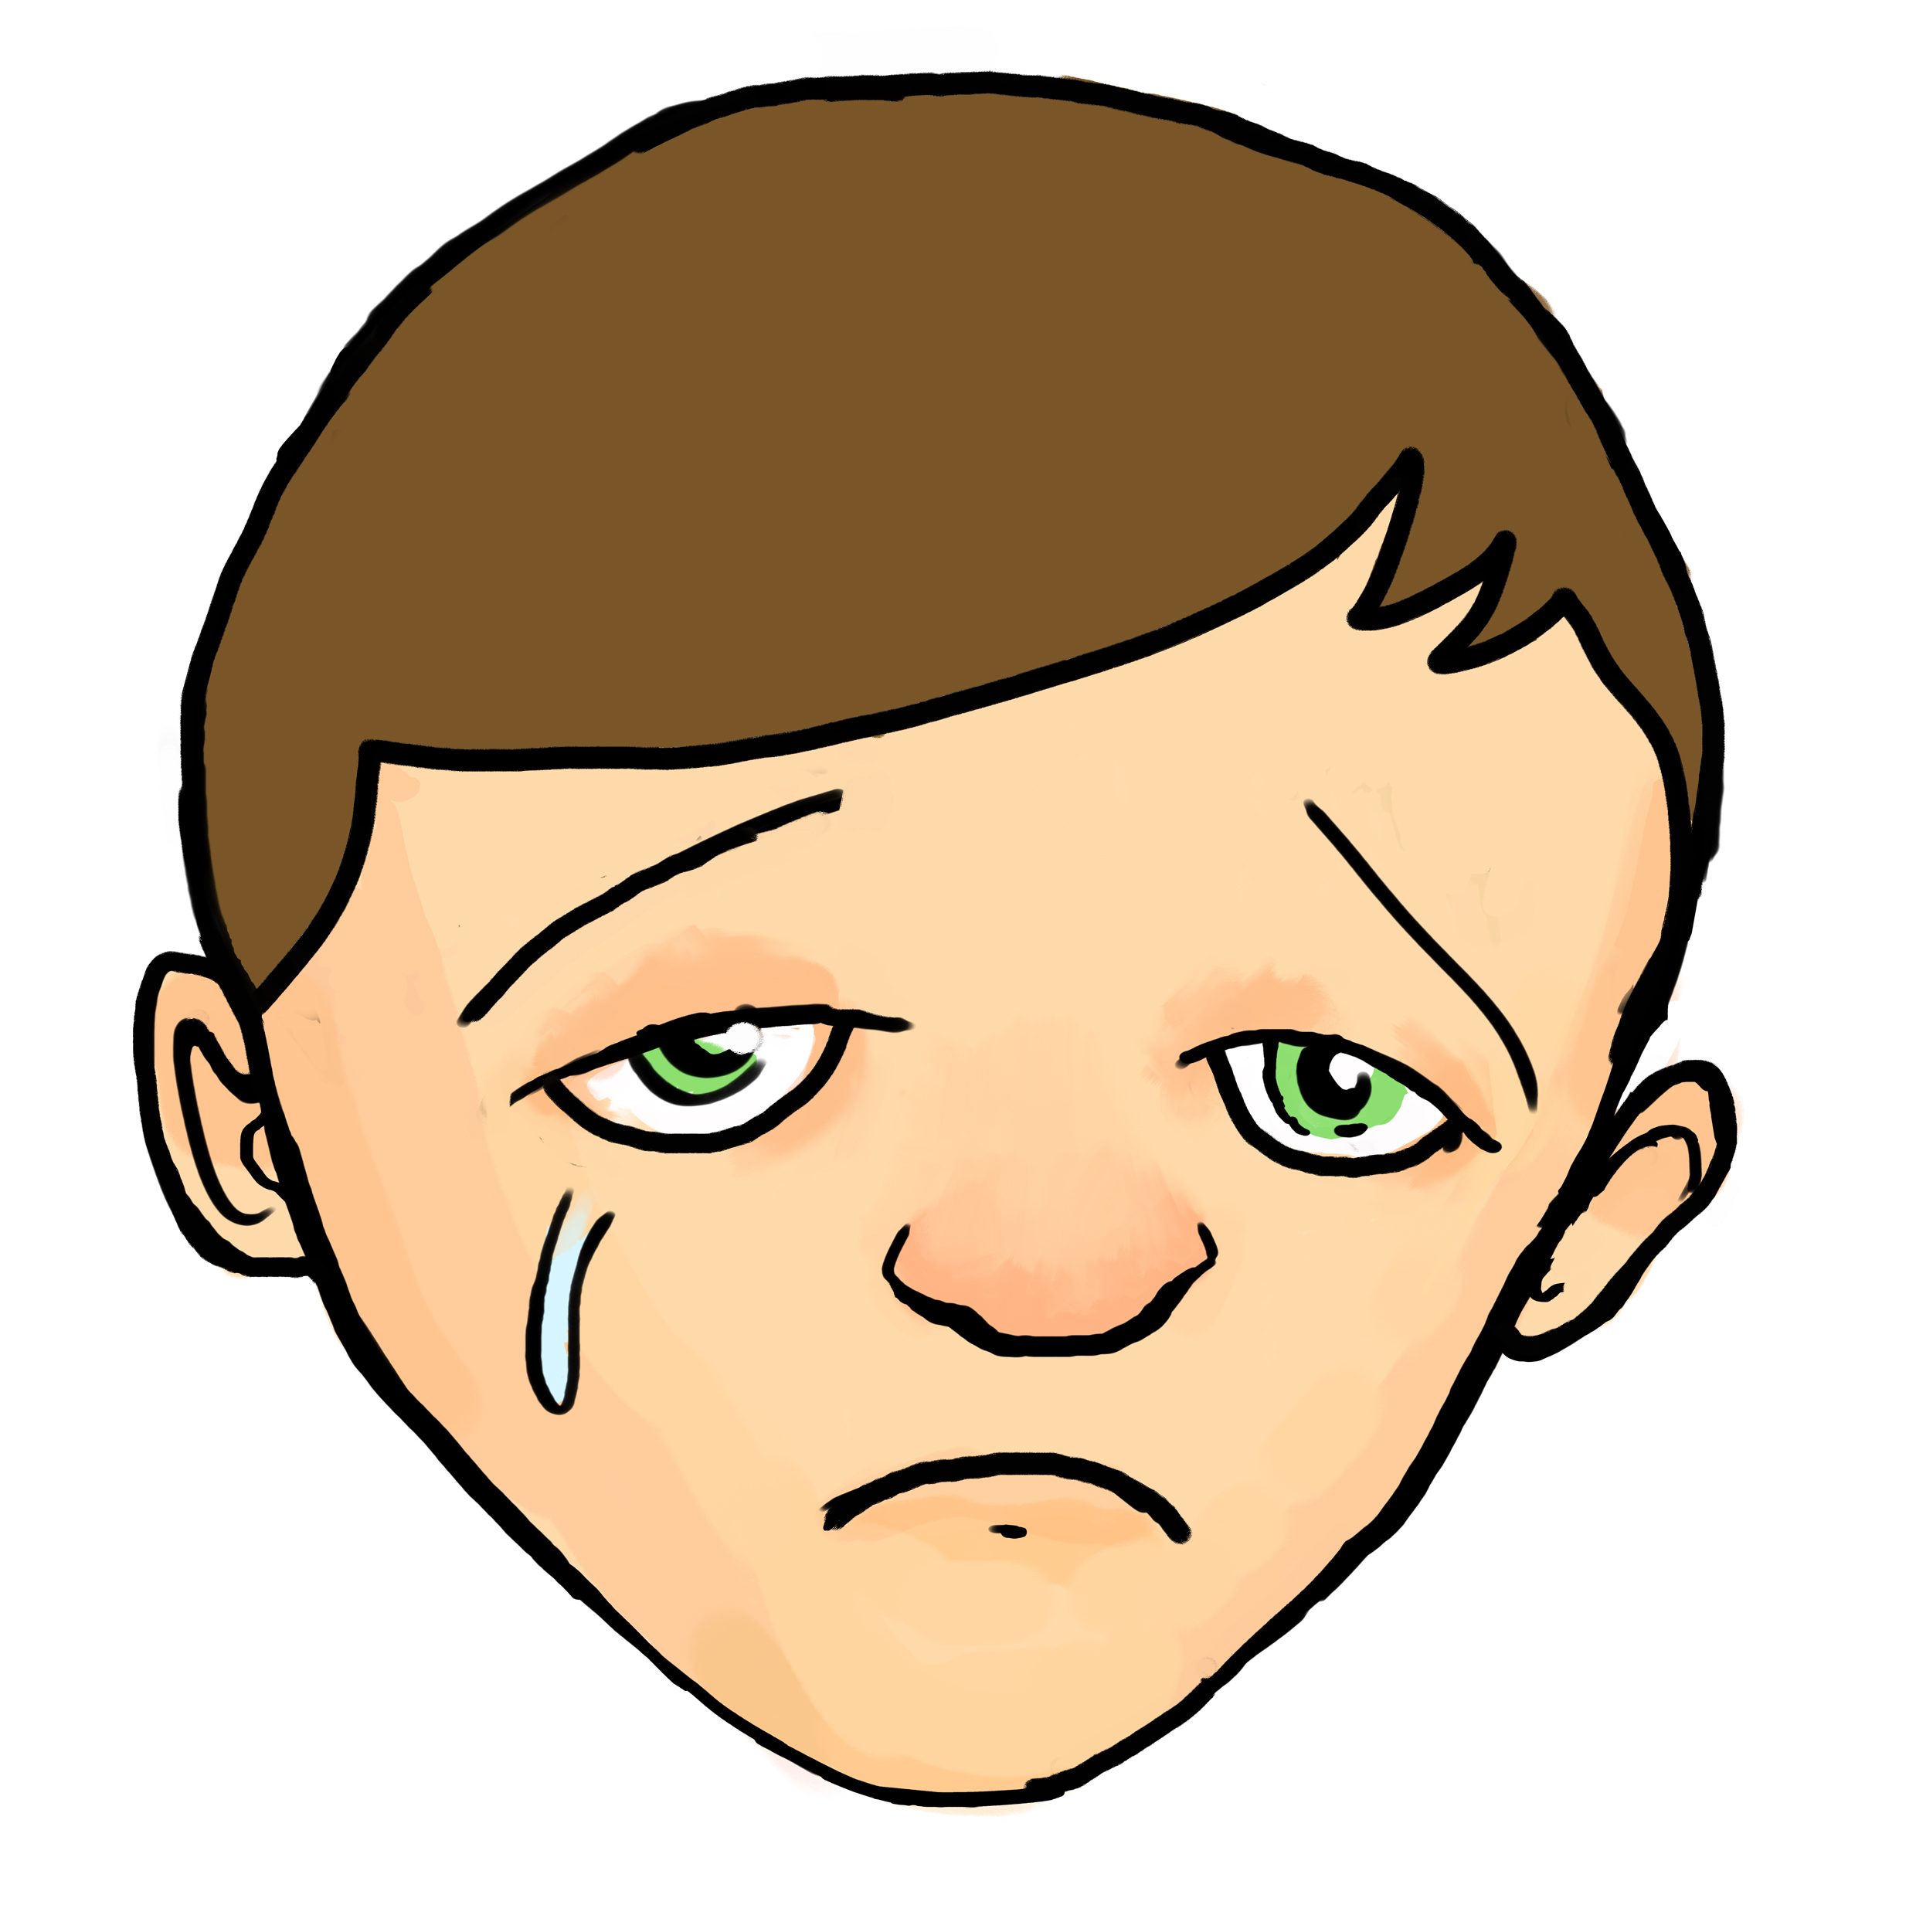 Sadness clipart #1, Download drawings